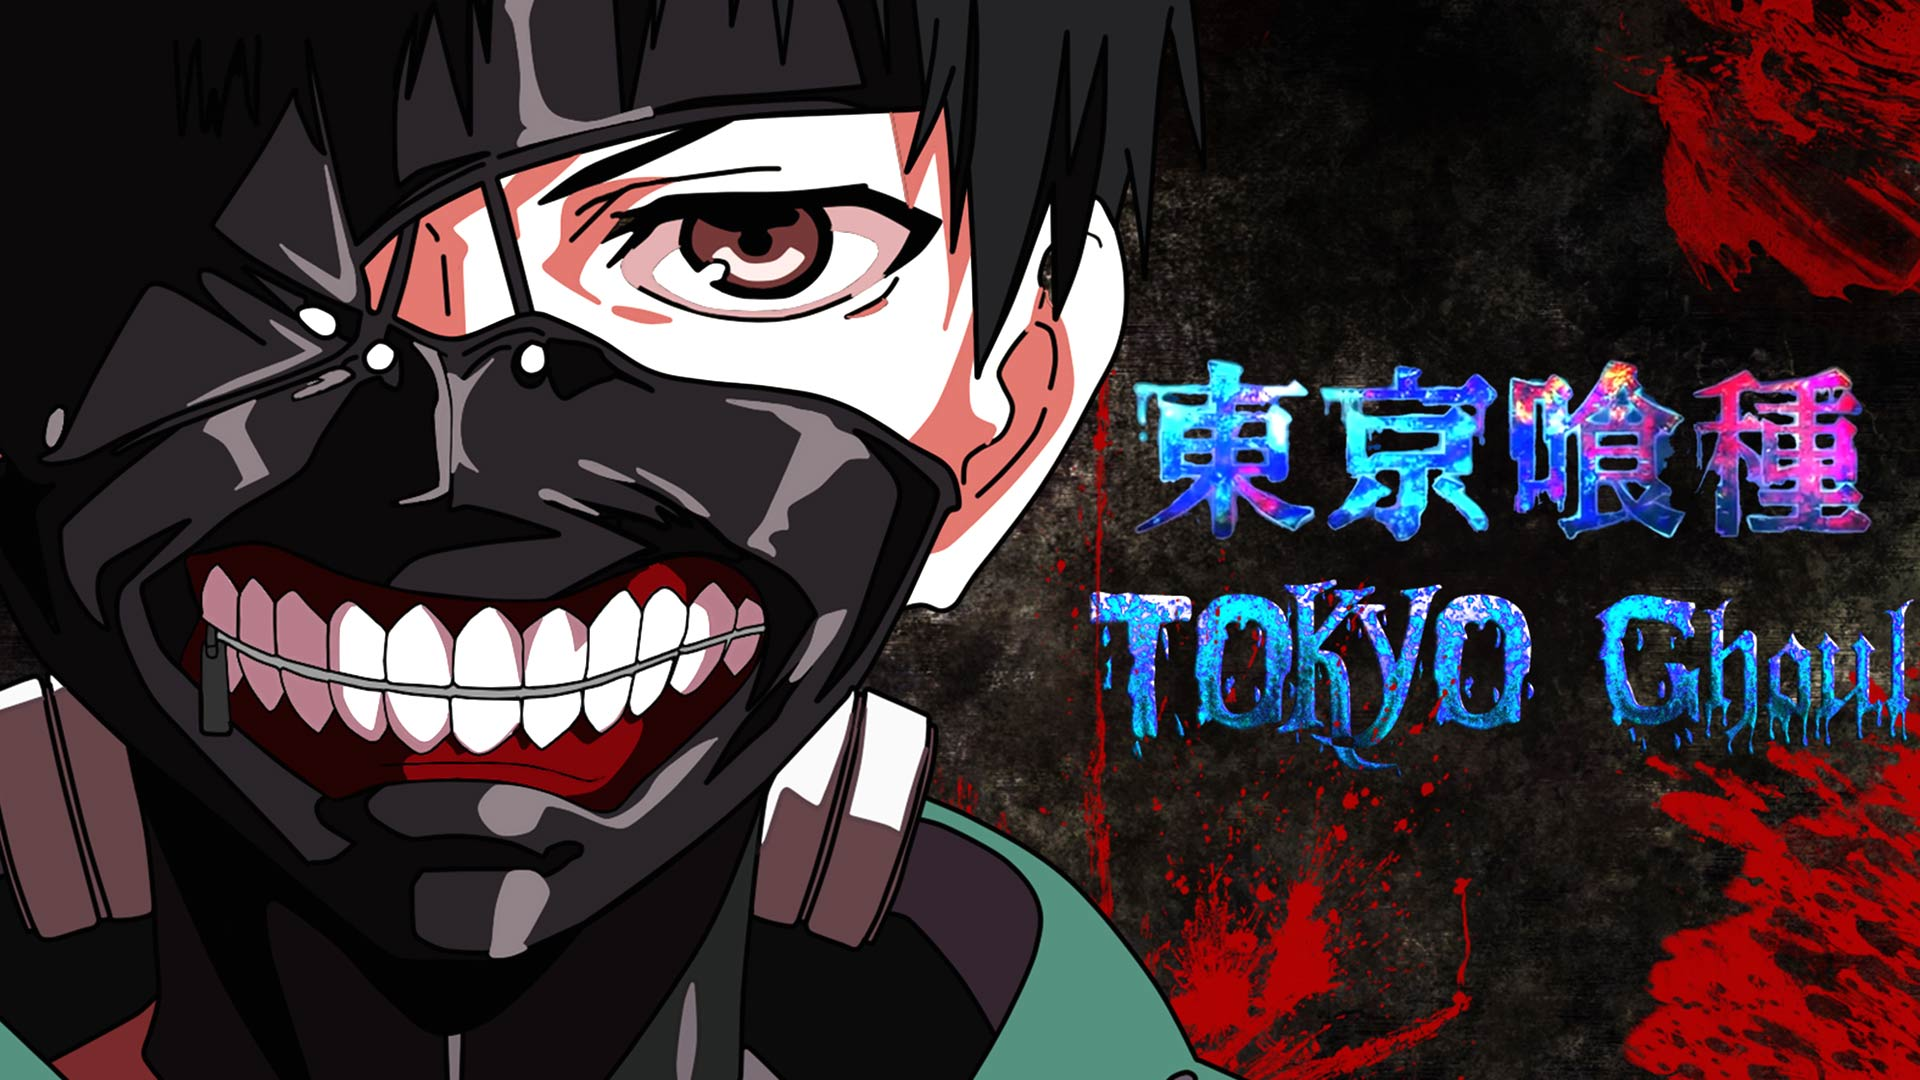 Free Download Tokyo Ghoul Wallpapers Full Hd Wallpapers For 1080p